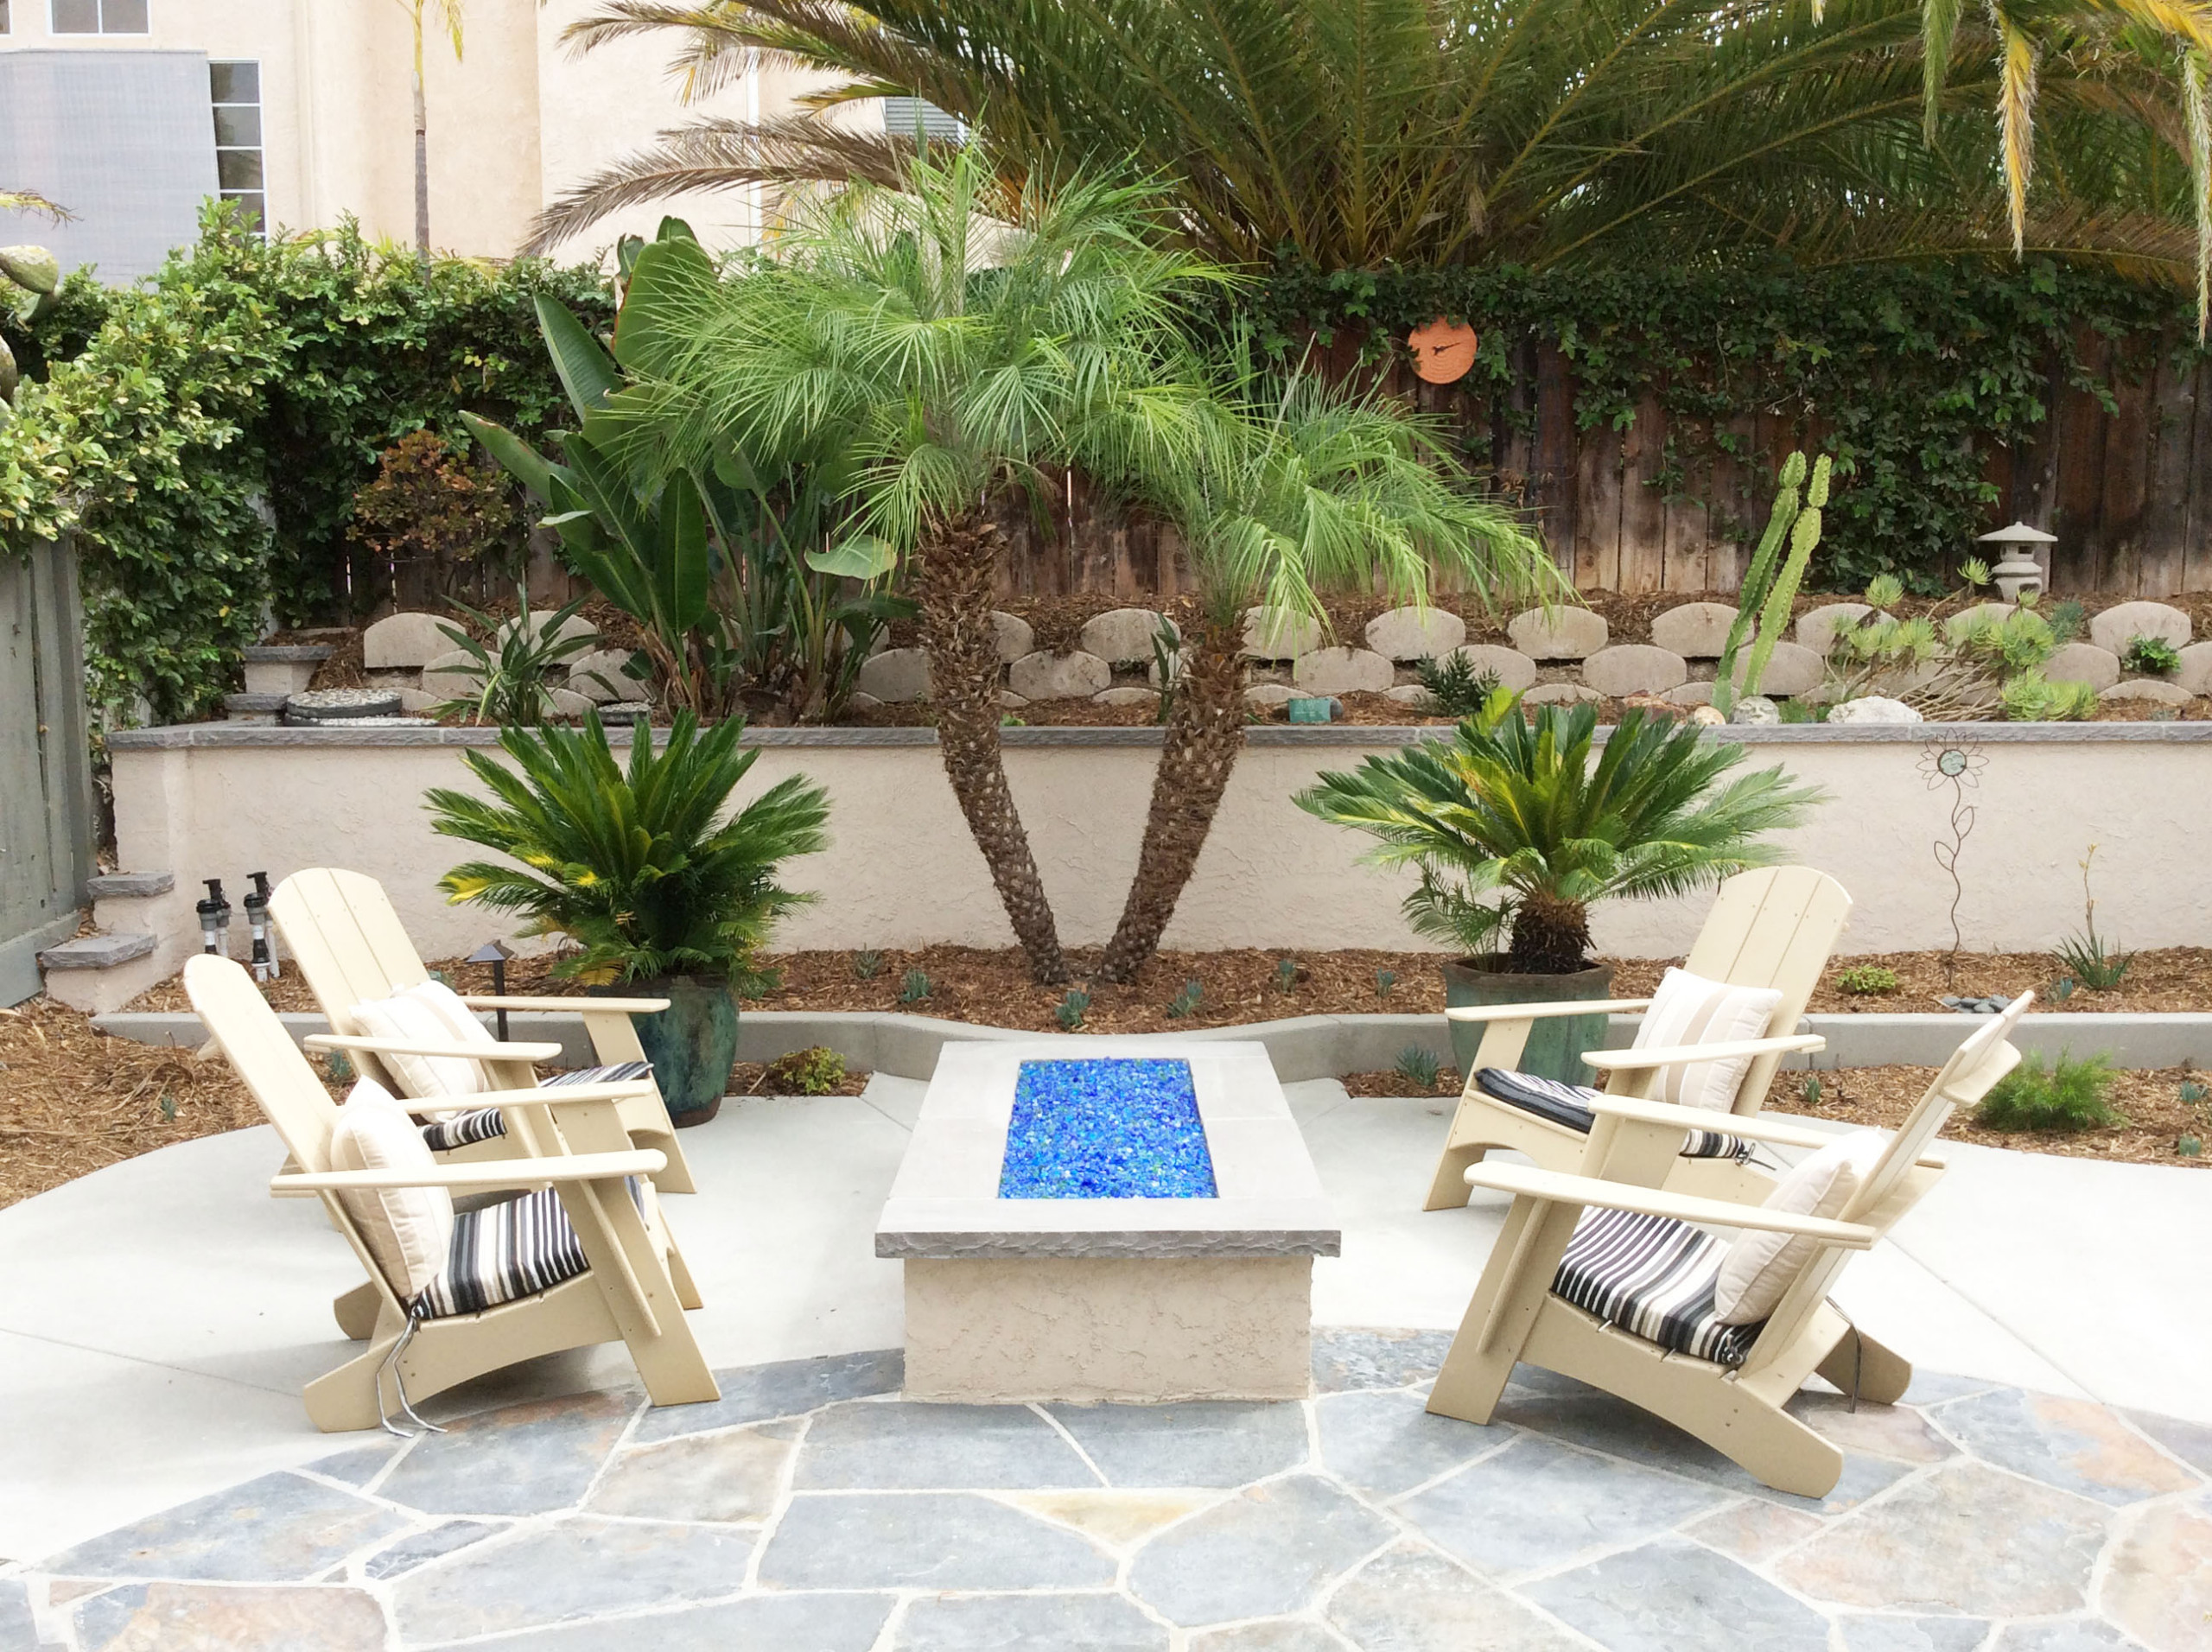 Fire Pit Lounge Area and Palm Tree Focal Point